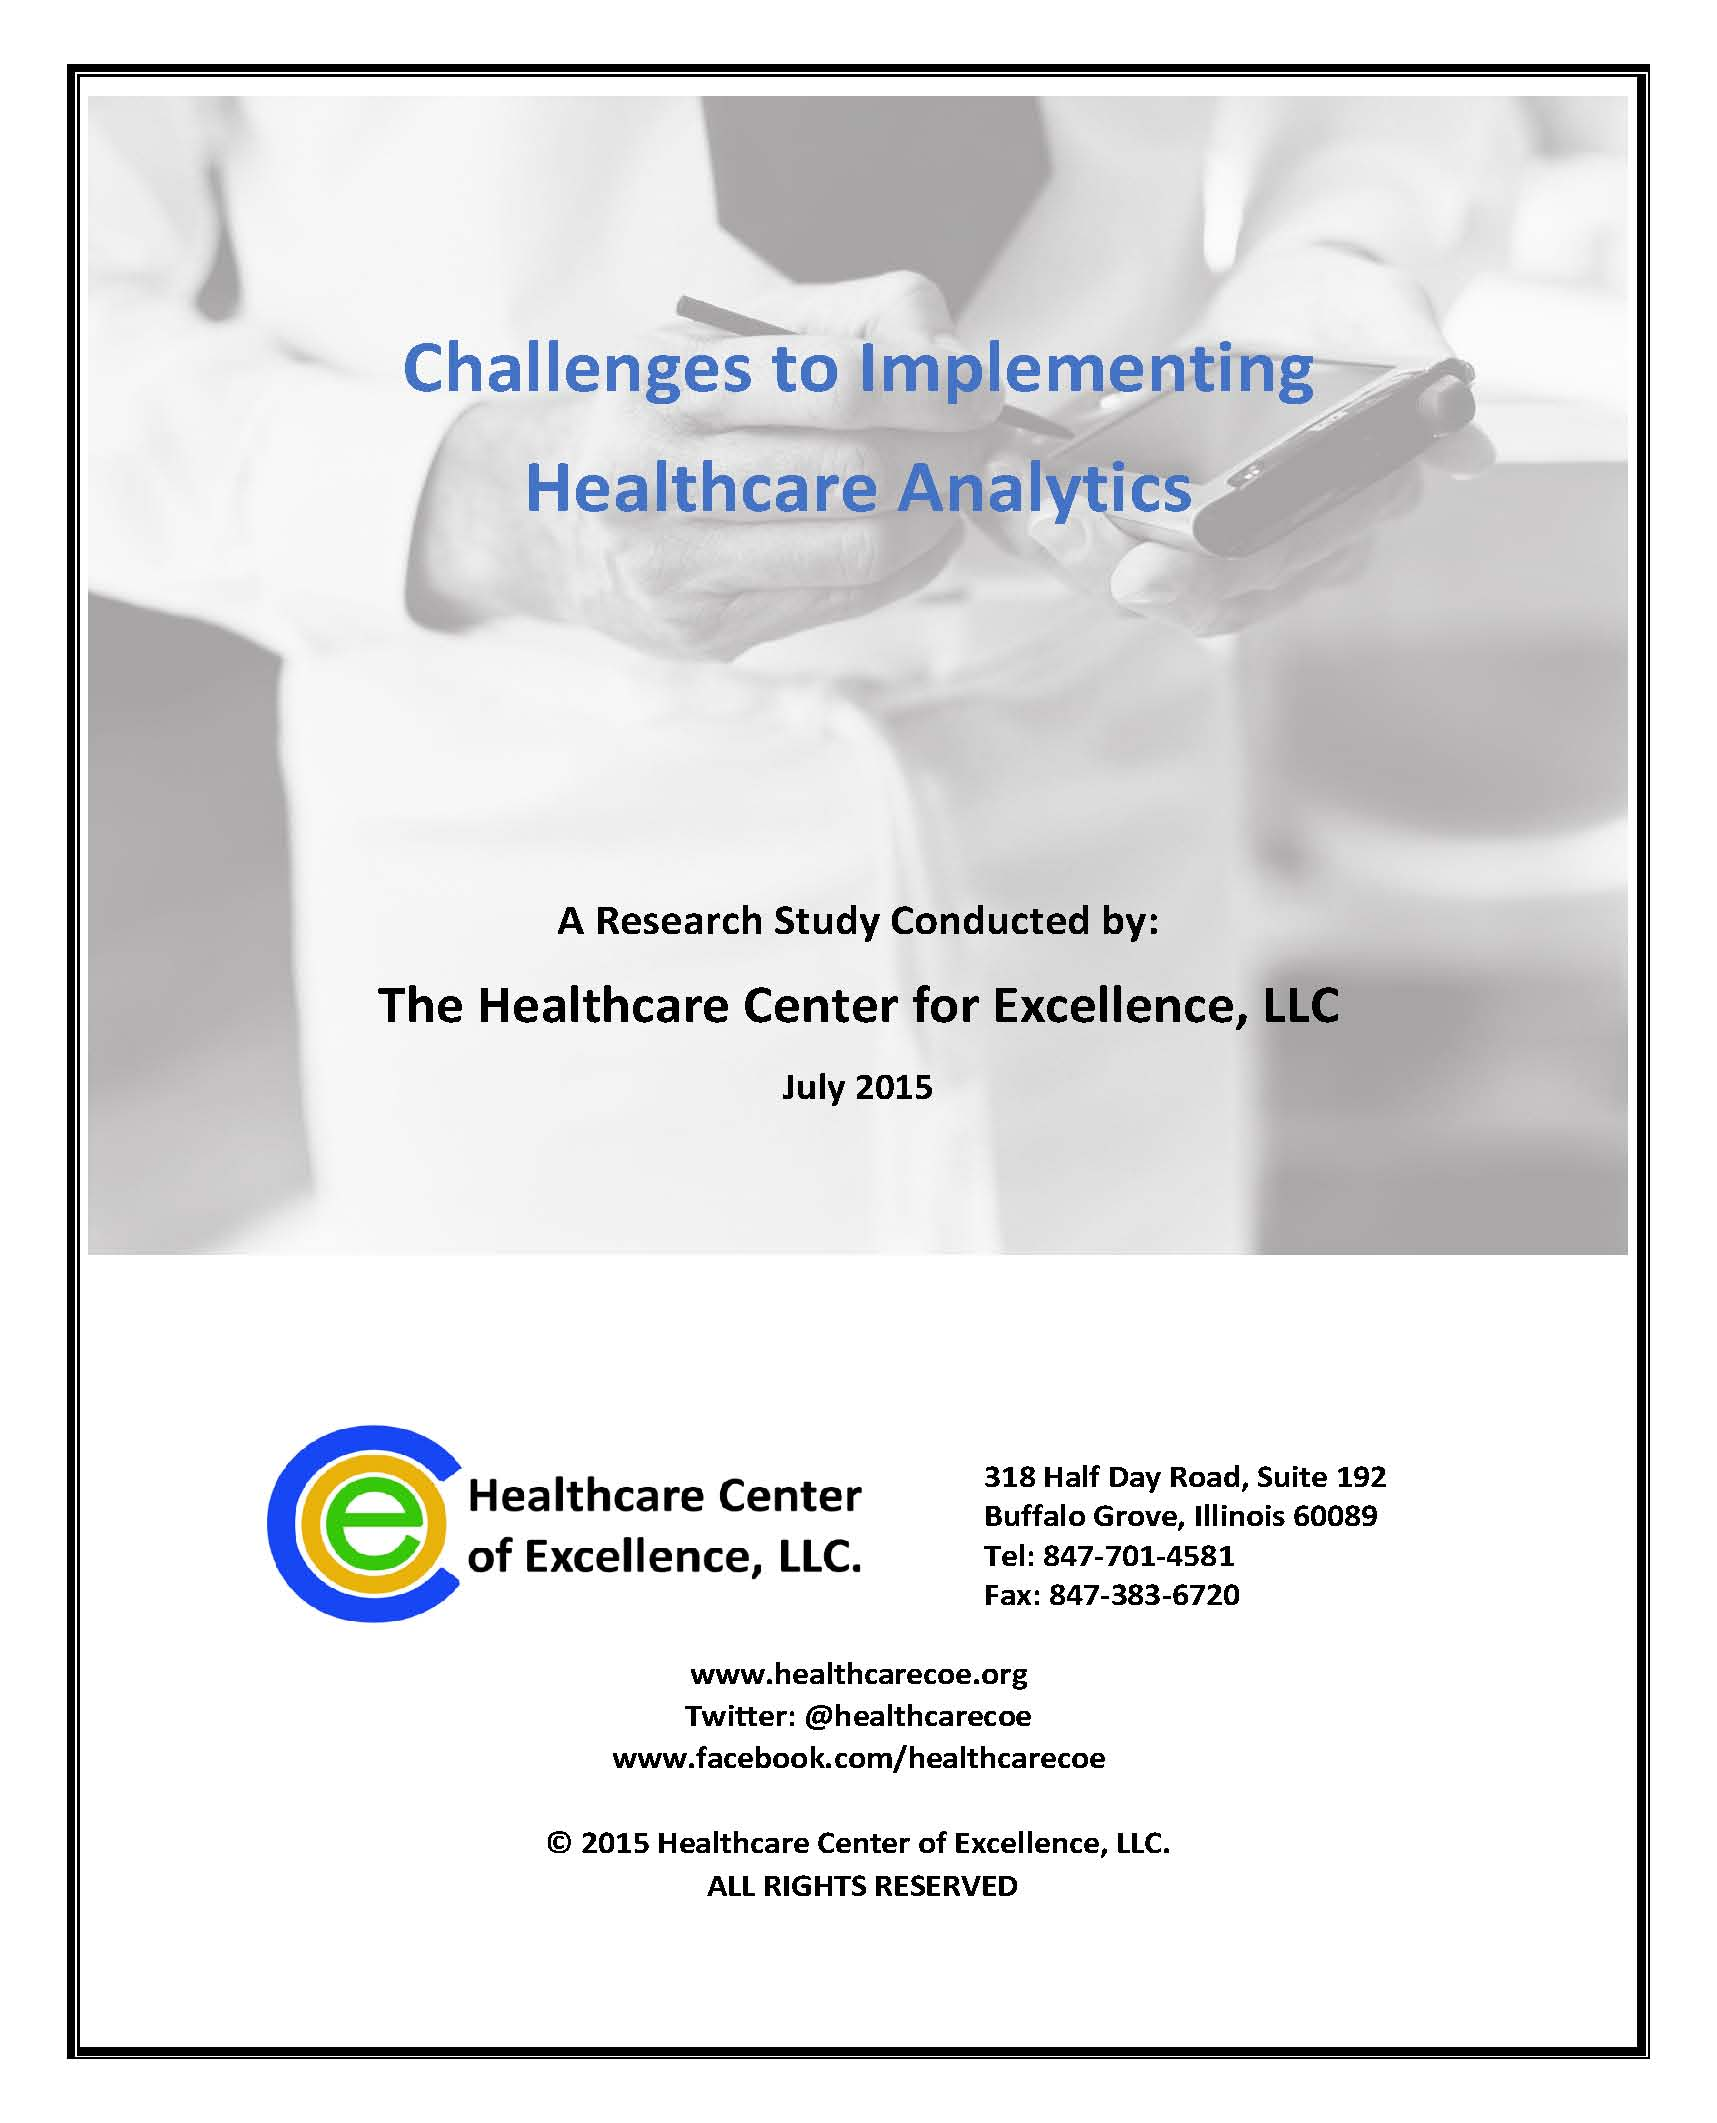 Challenges to Implementing Healthcare Analytics